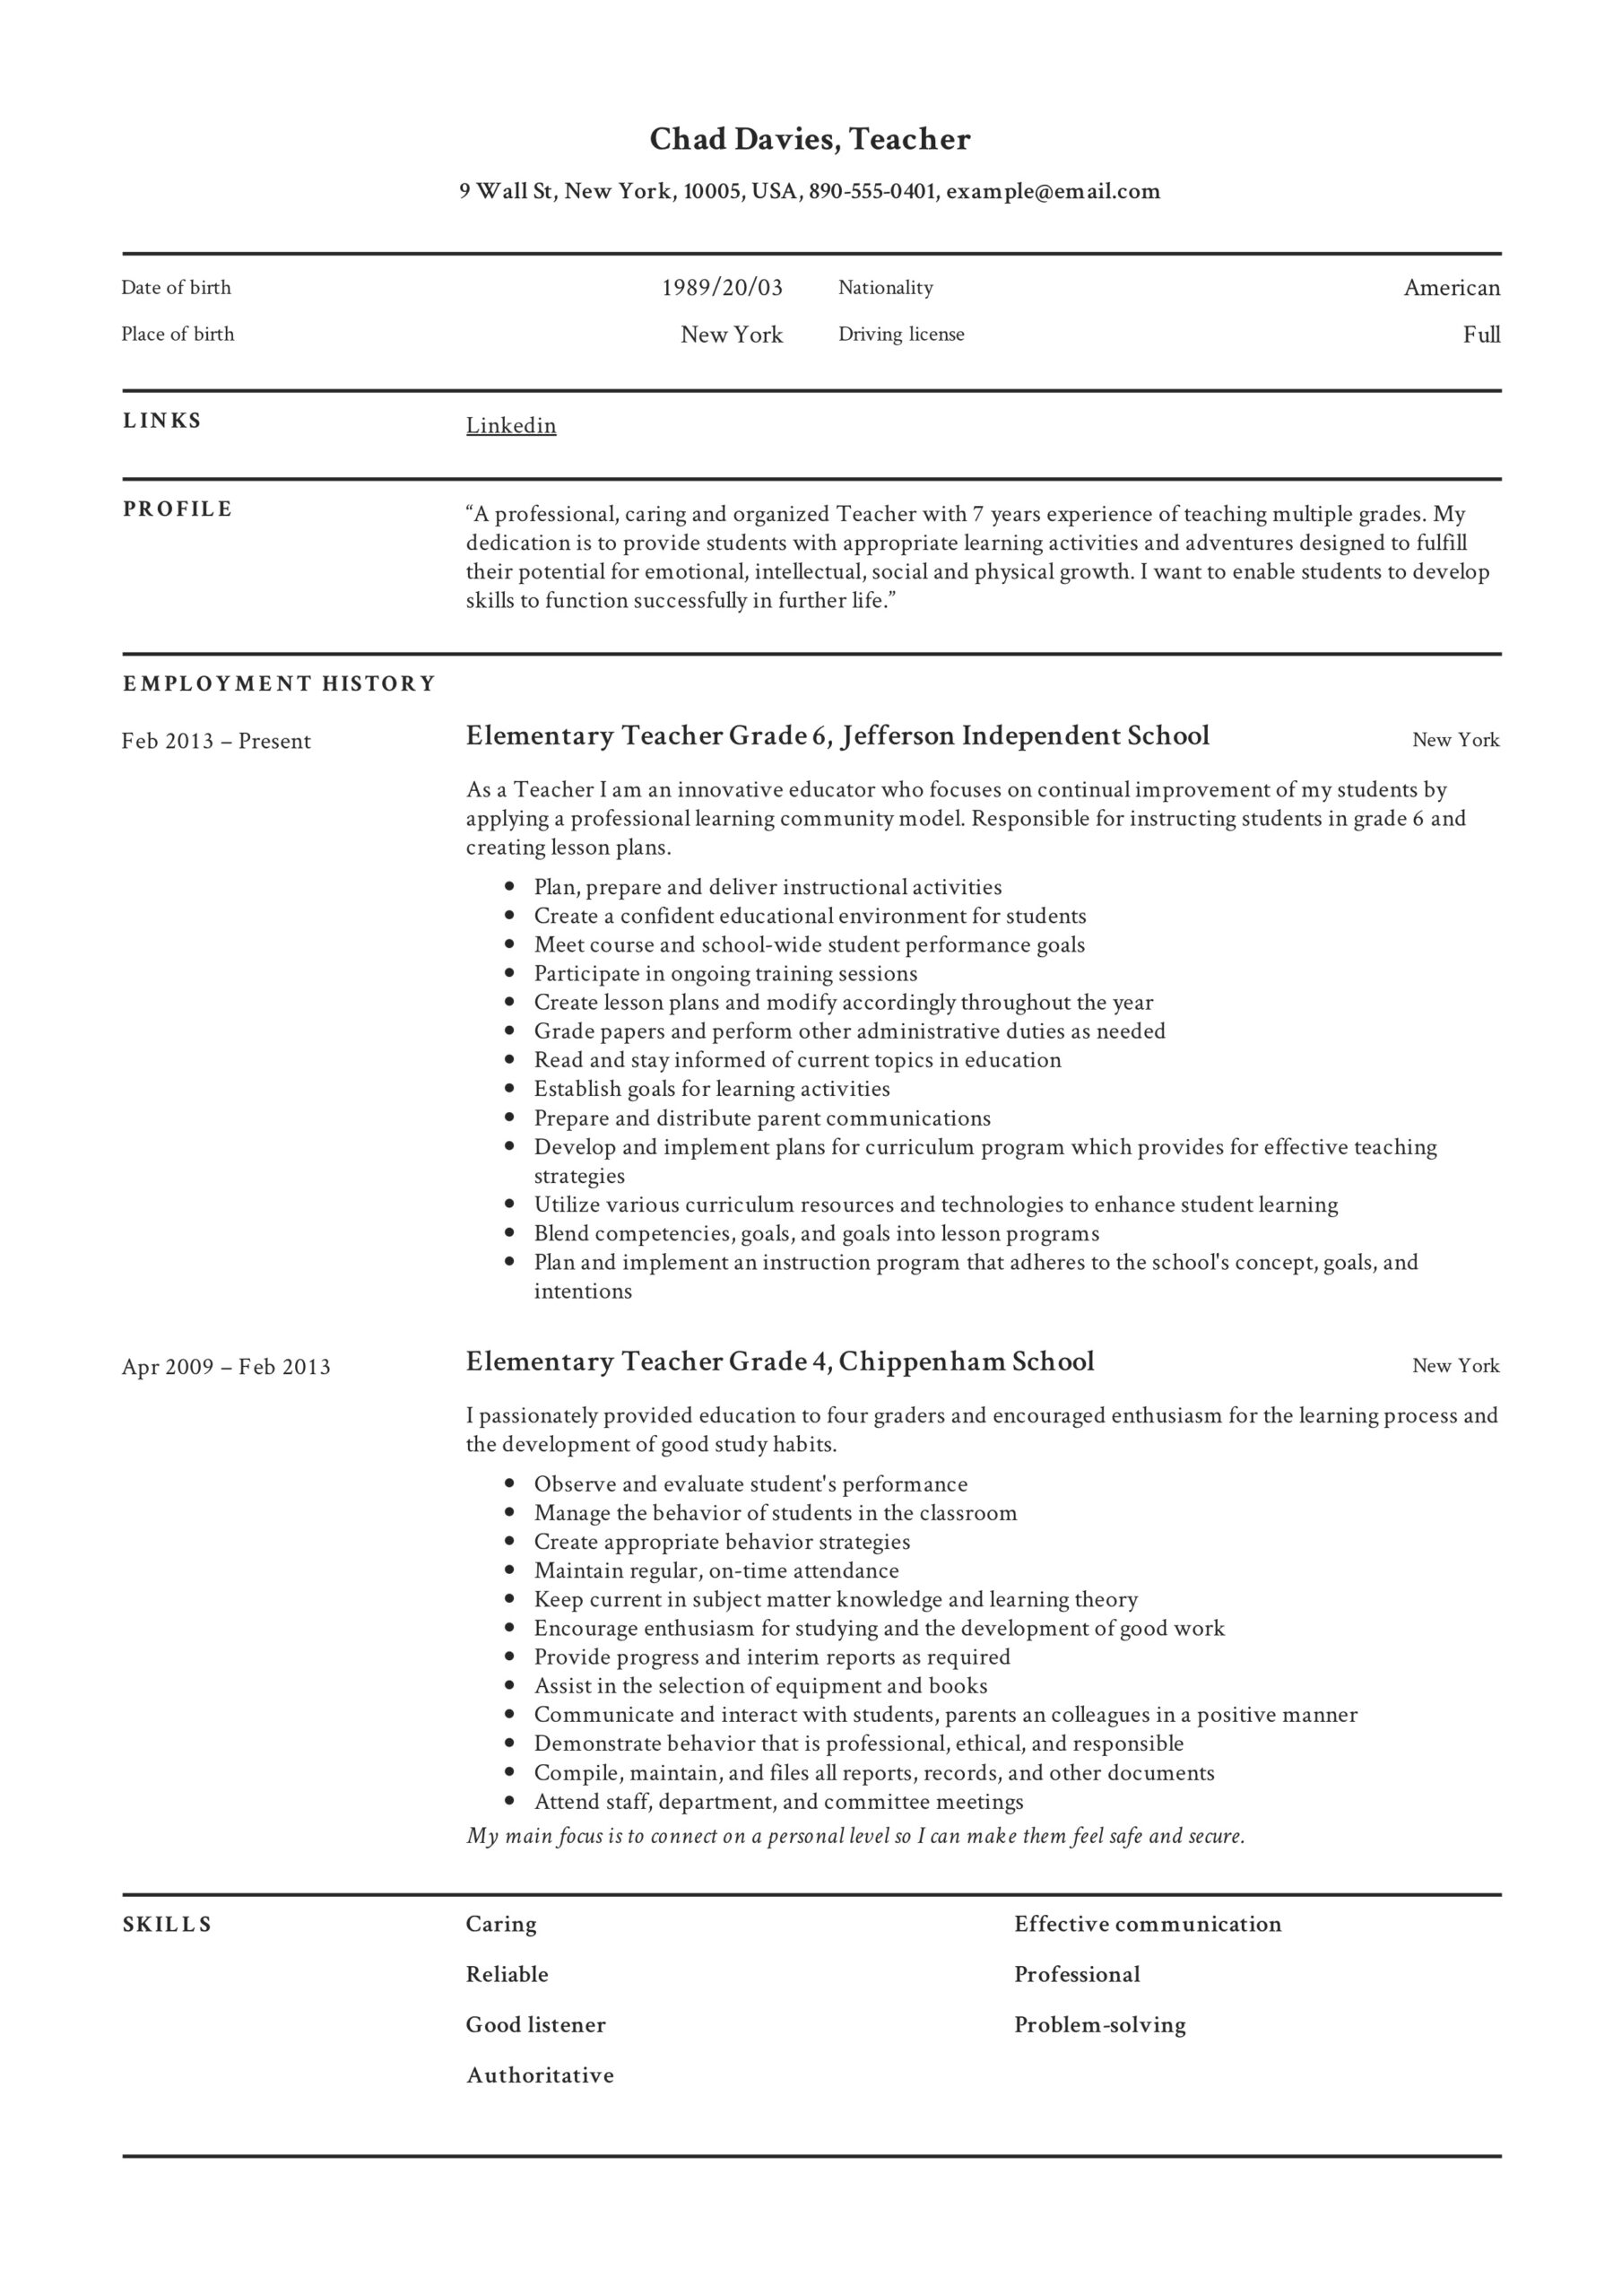 teacher resume writing guide examples pdf elementary teachers sample canva templates Resume Resume Examples Elementary Teachers